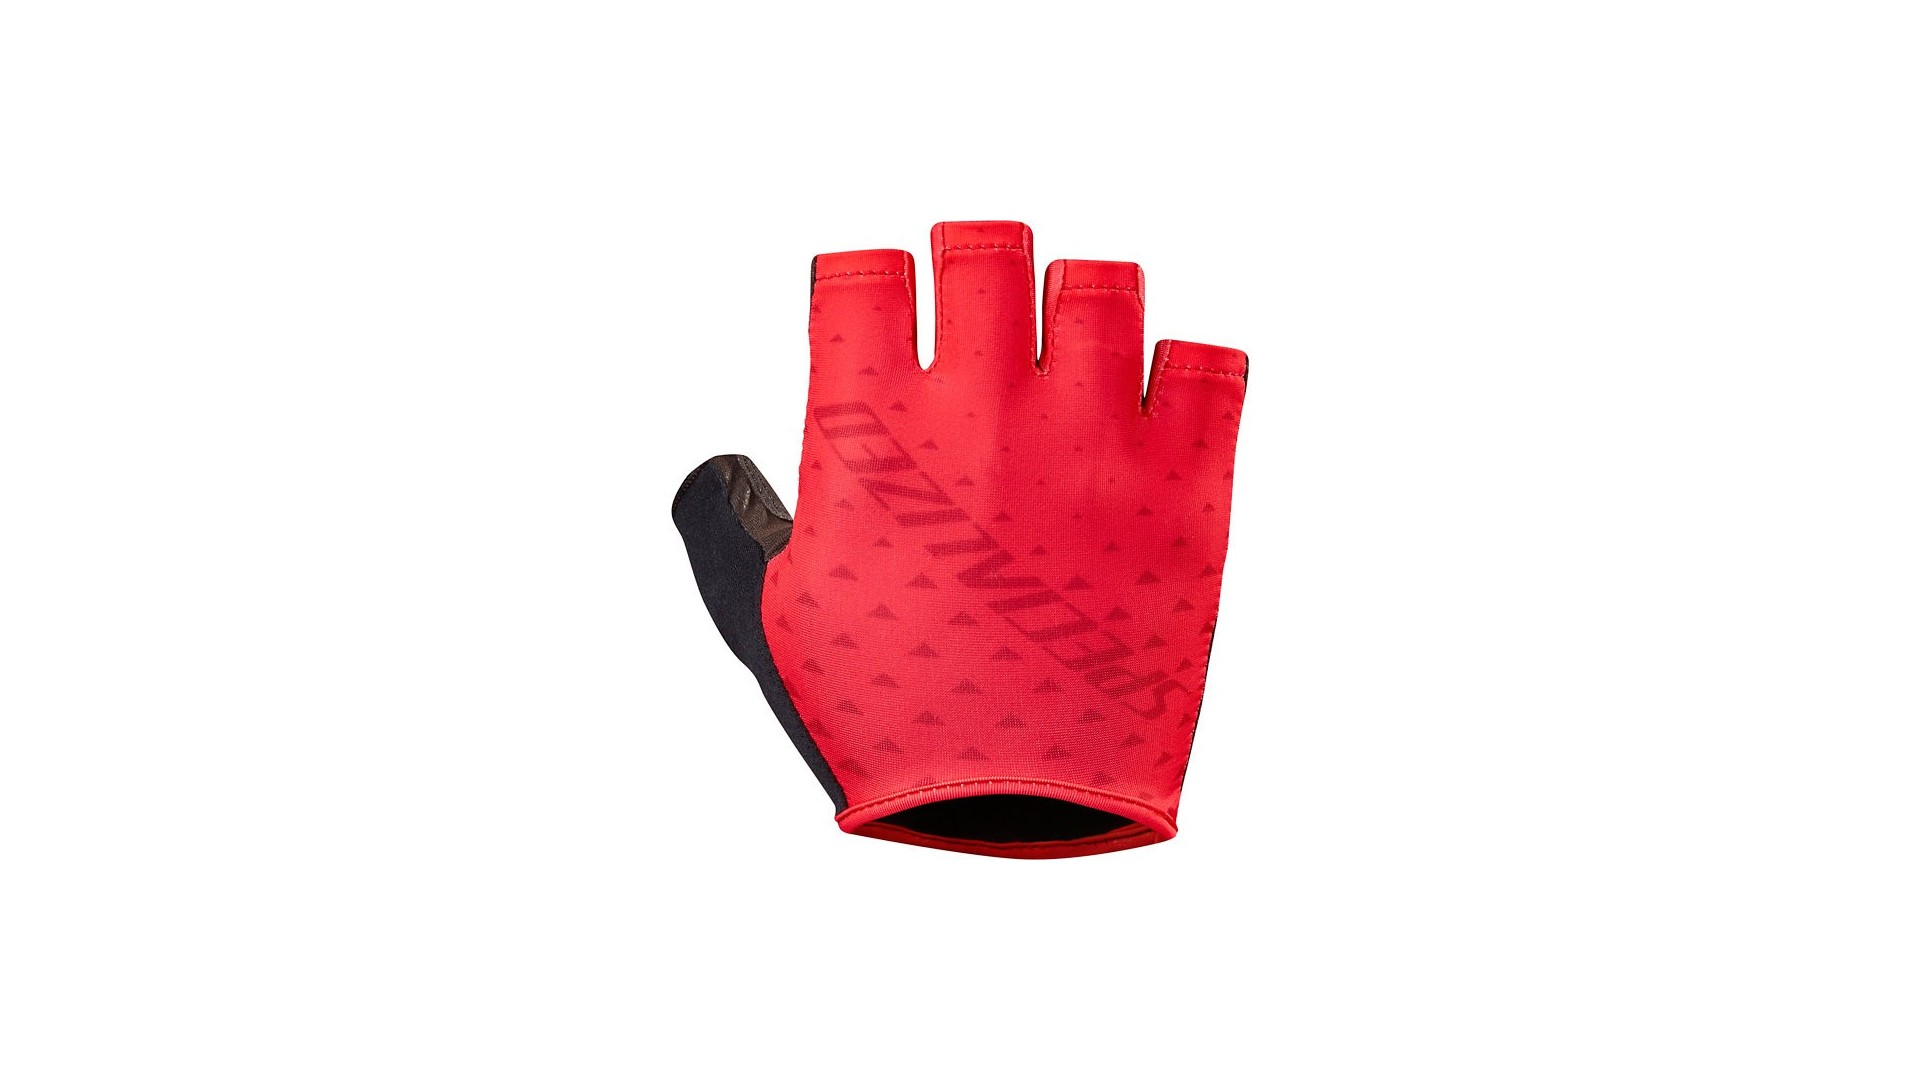 SL Pro Guantes Specialized Body Geometry Equipo Rojo 1 IBKBike.es